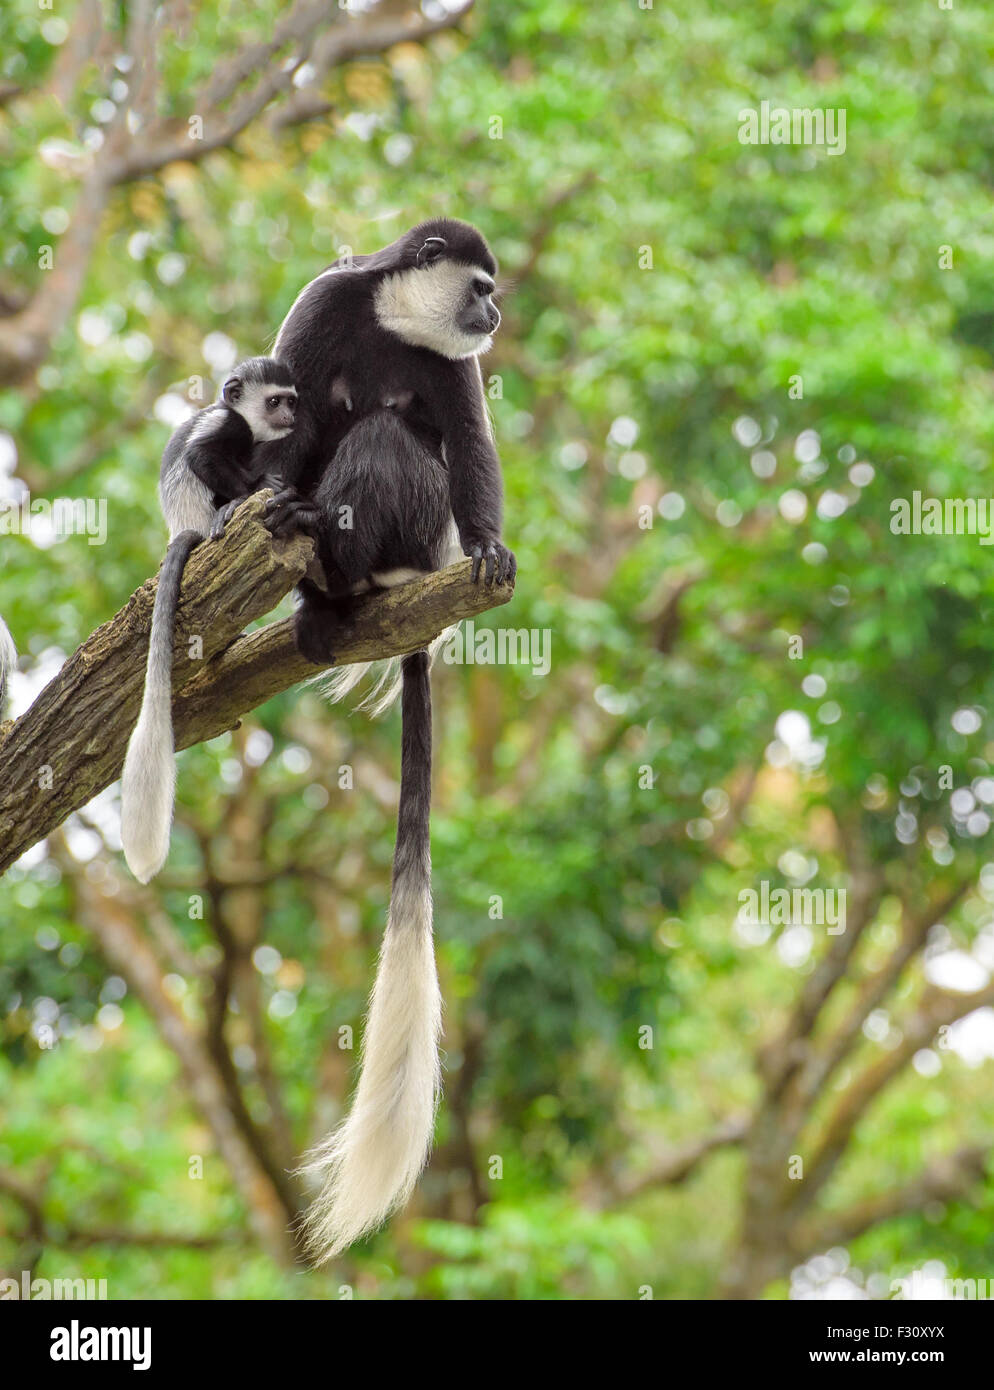 Baby colobus monkey with its mom sitting on a tree in rainforest - Stock Image